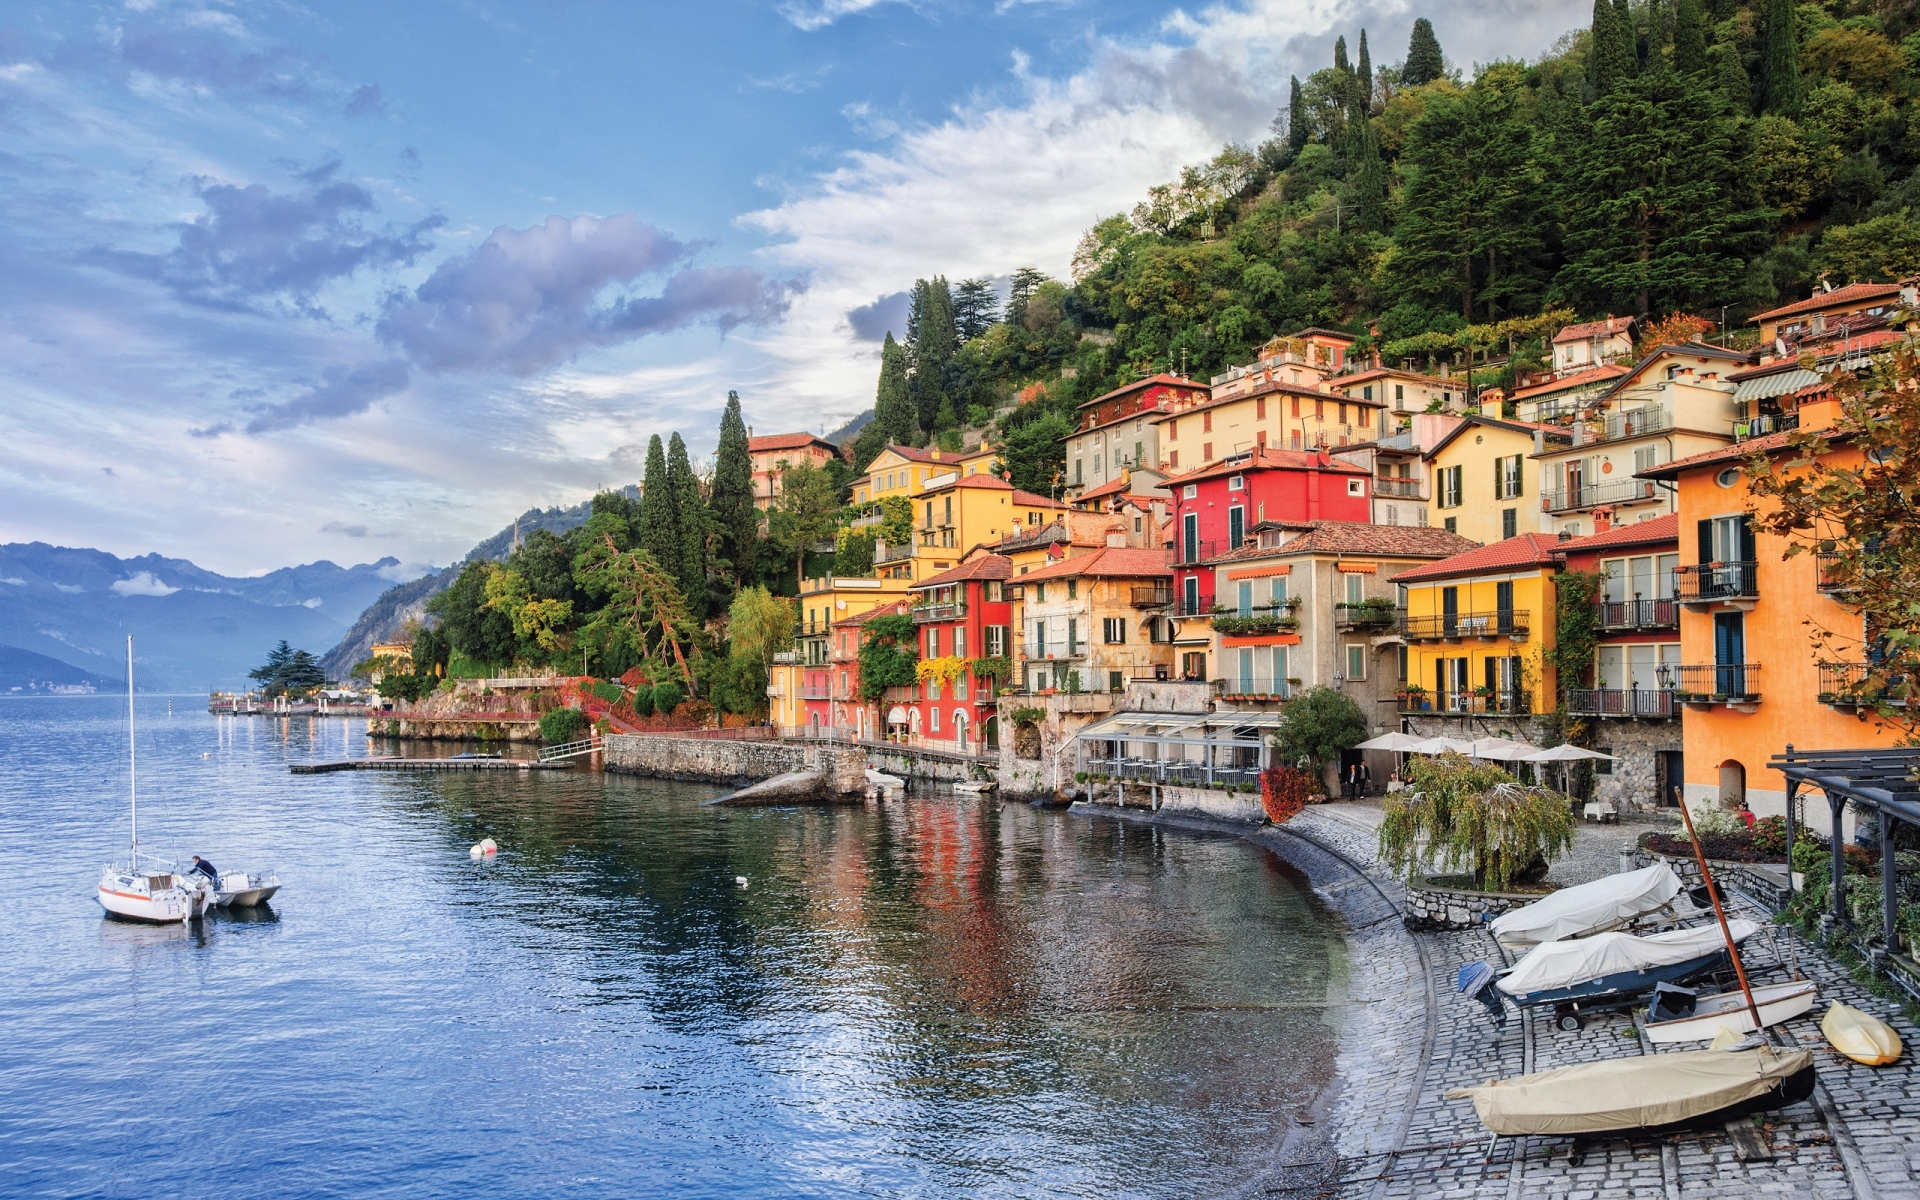 Lake Como itself is one of the deepest lakes in all of Europe and is the third largest lake in Italy.